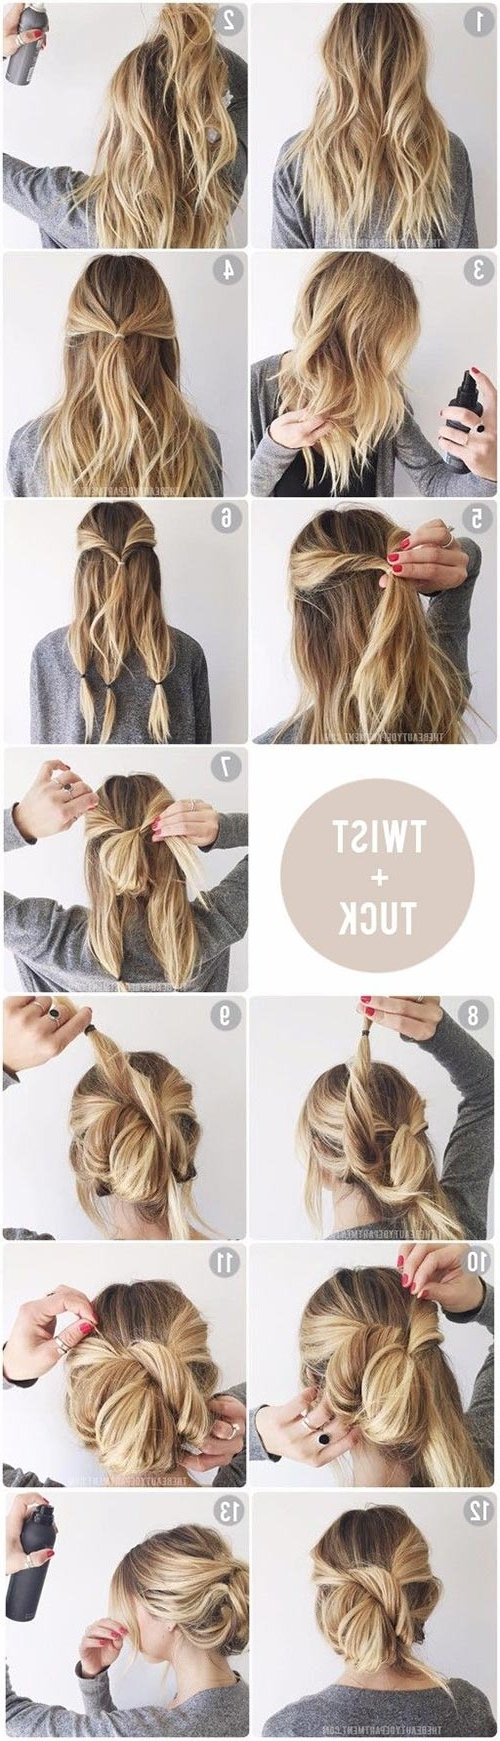 Top 10 Messy Updo Tutorials For Different Hair Lengths Throughout Easy Updo Hairstyles For Long Hair (View 14 of 15)